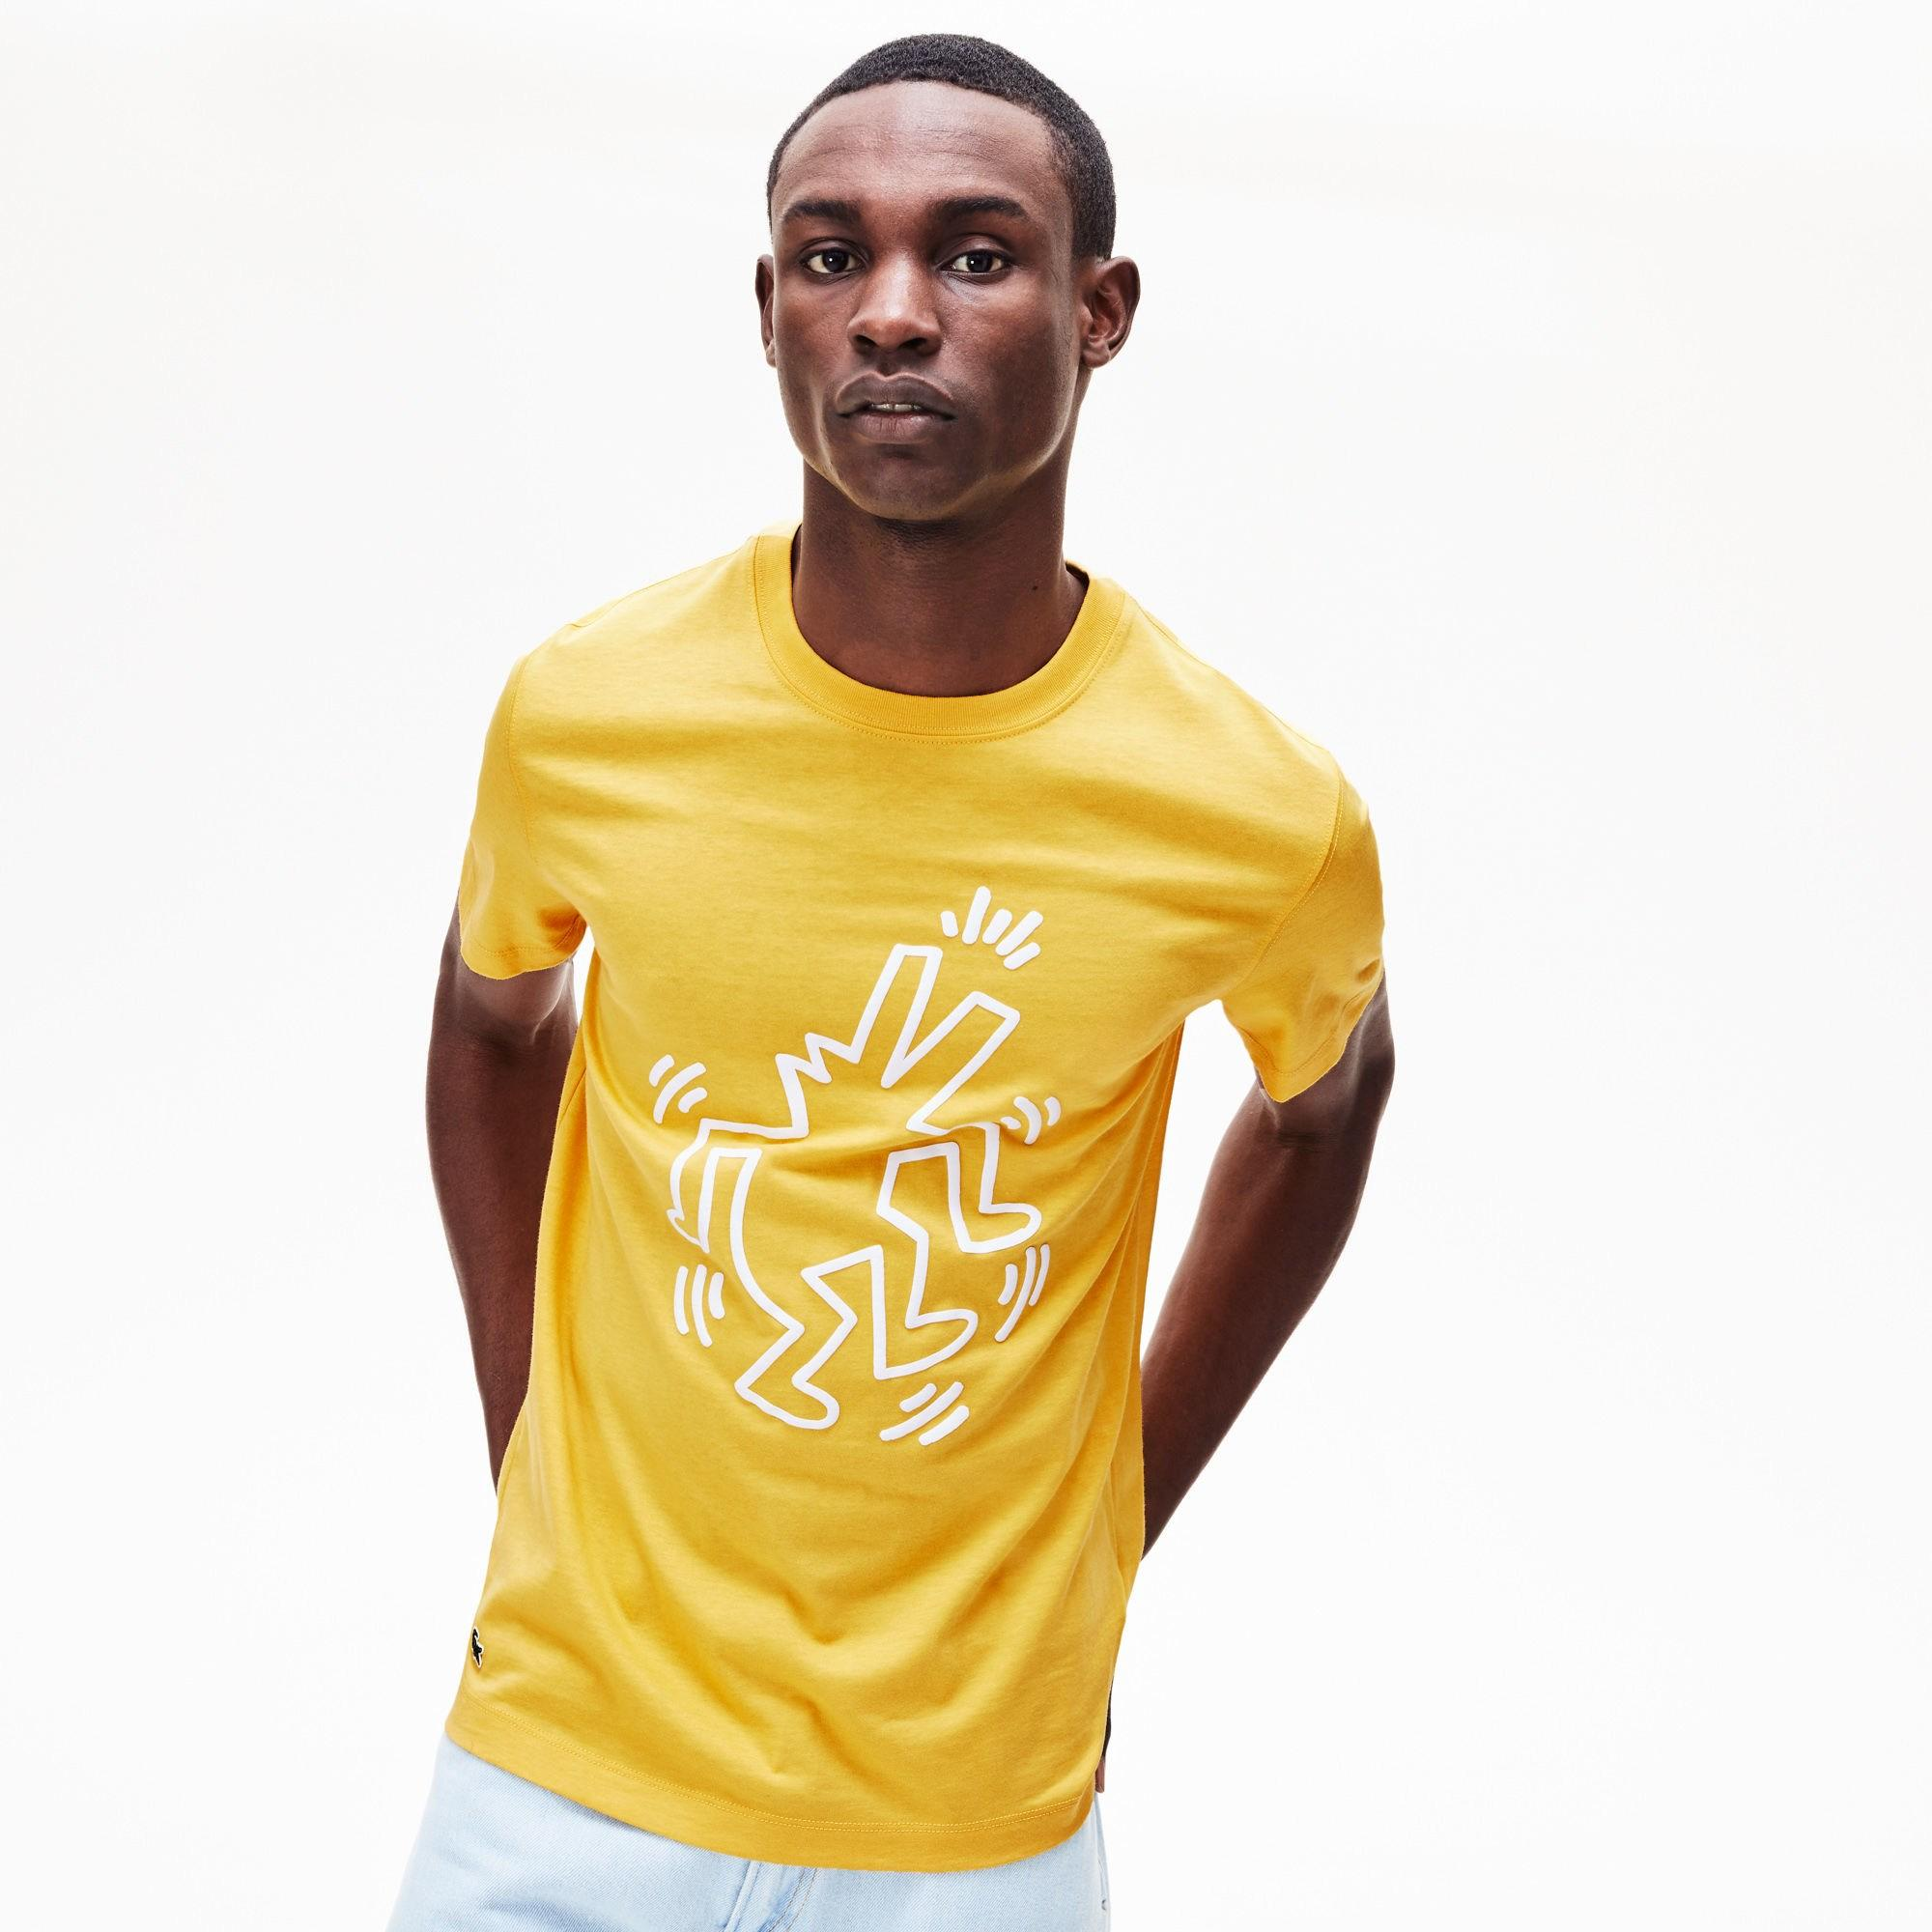 577457d6b4b Lacoste - Yellow Keith Haring Graphic Jersey Tee for Men - Lyst. View  fullscreen